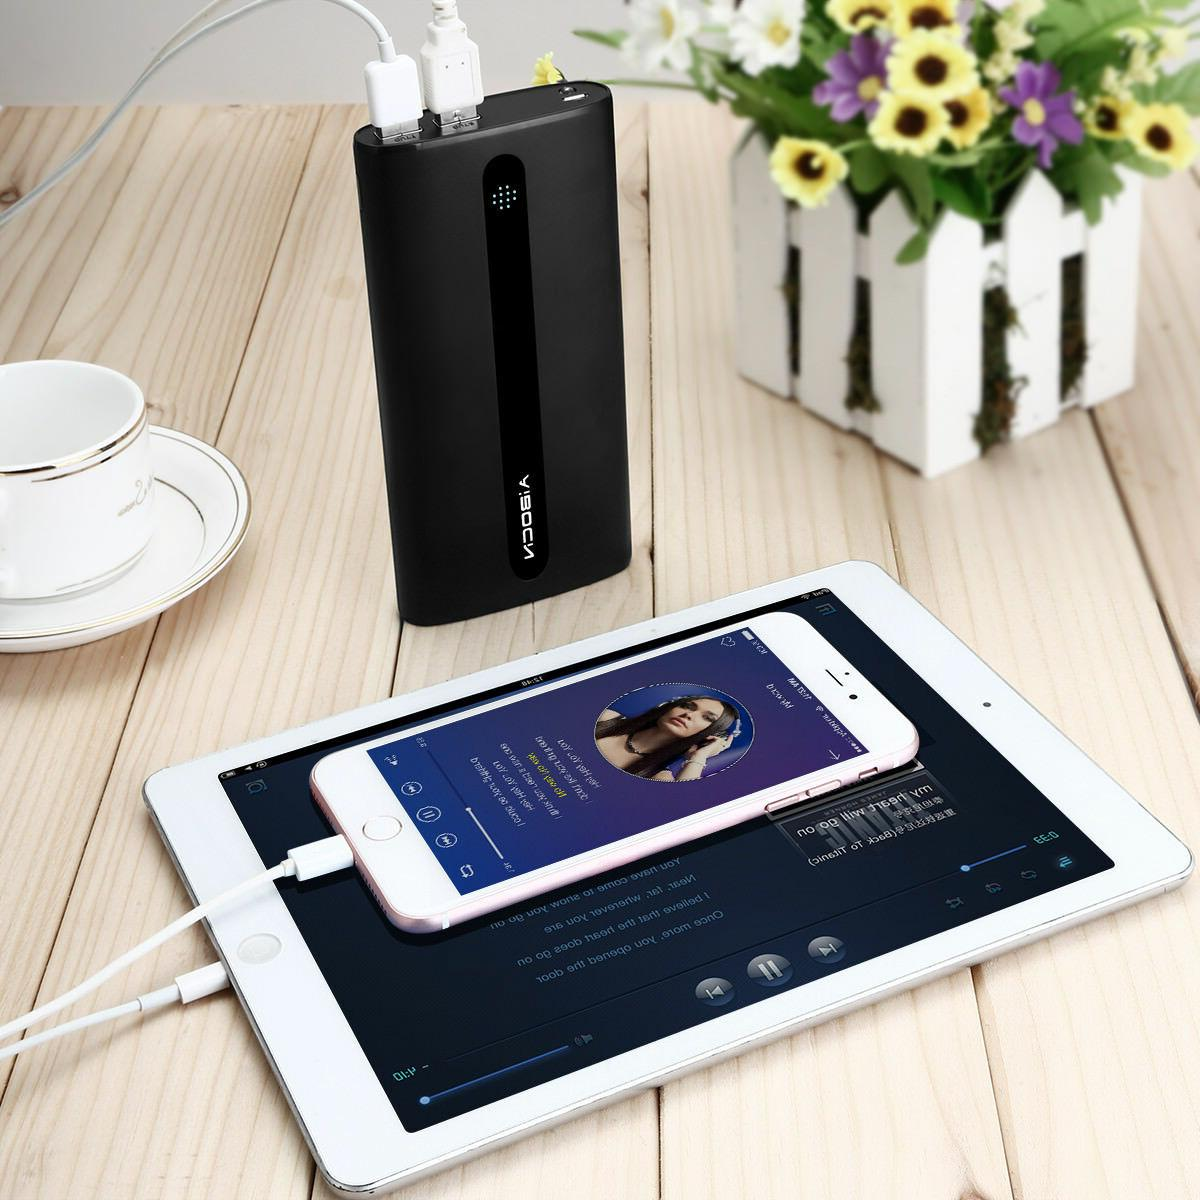 Aibocn 2 USB LED Portable Extenal Charger For Phone